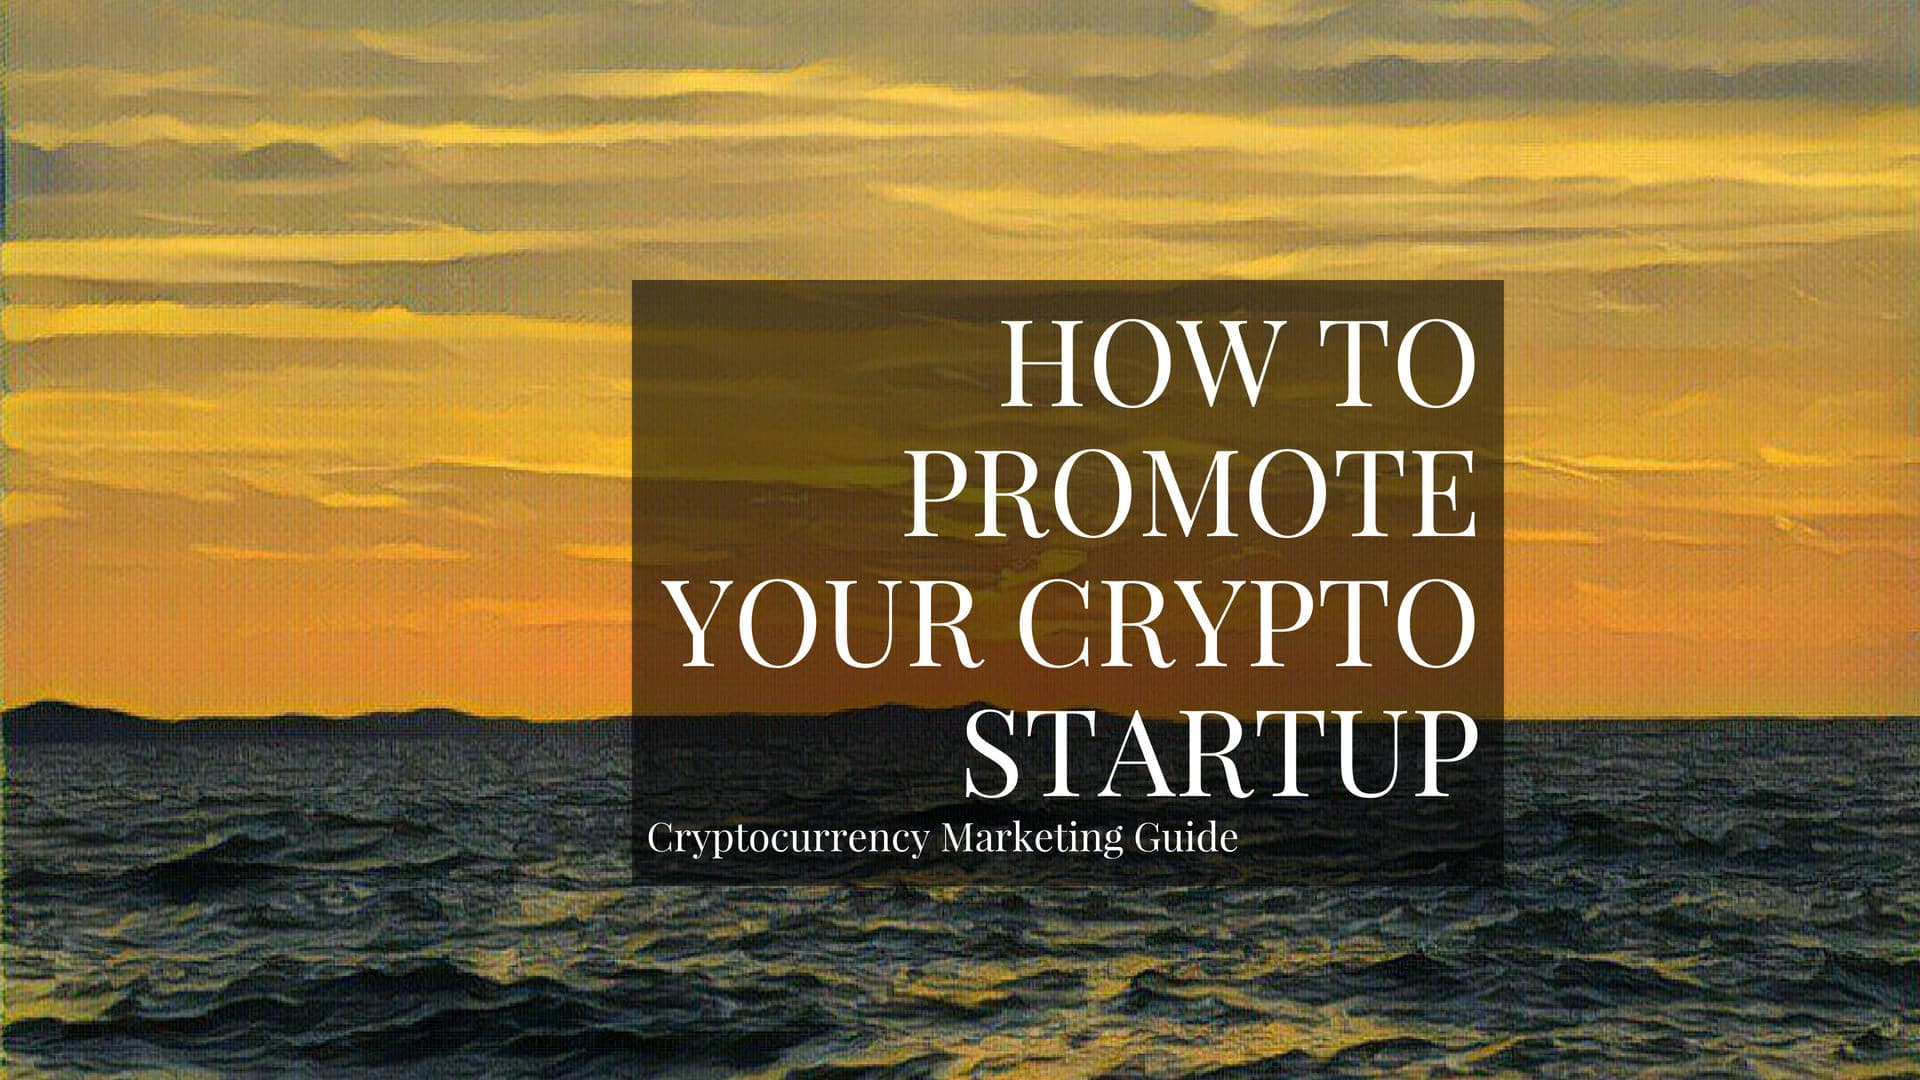 This post is your guide on how to run an online marketing campaign for your cryptocurrency startup.